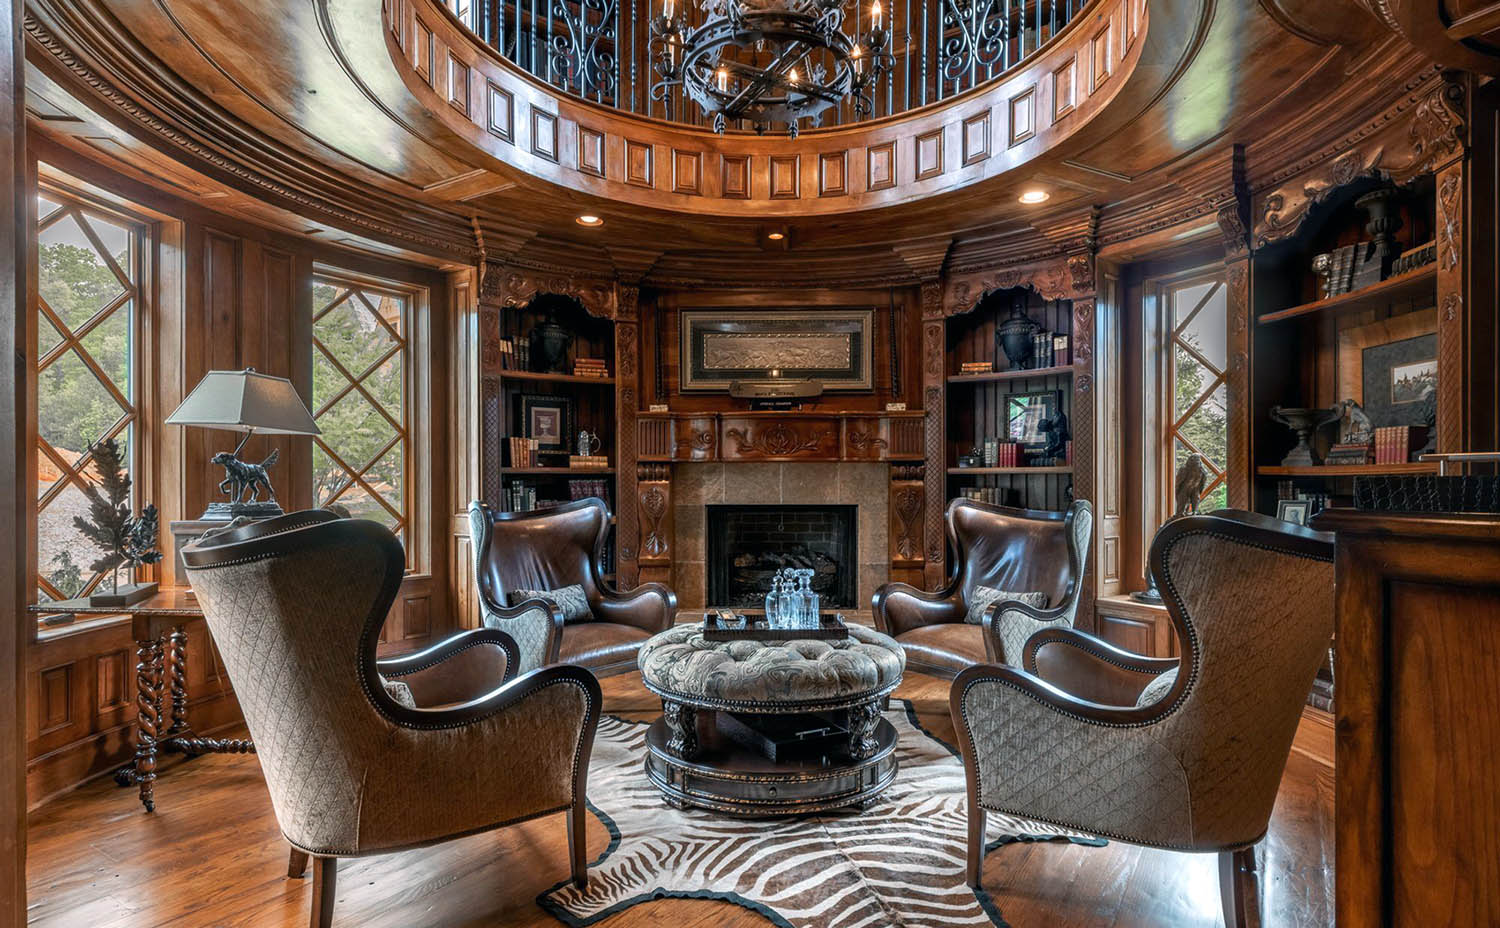 Beautiful round sitting room with all wood walls and ceiling. Wood floors. Fireplace with wood surround.